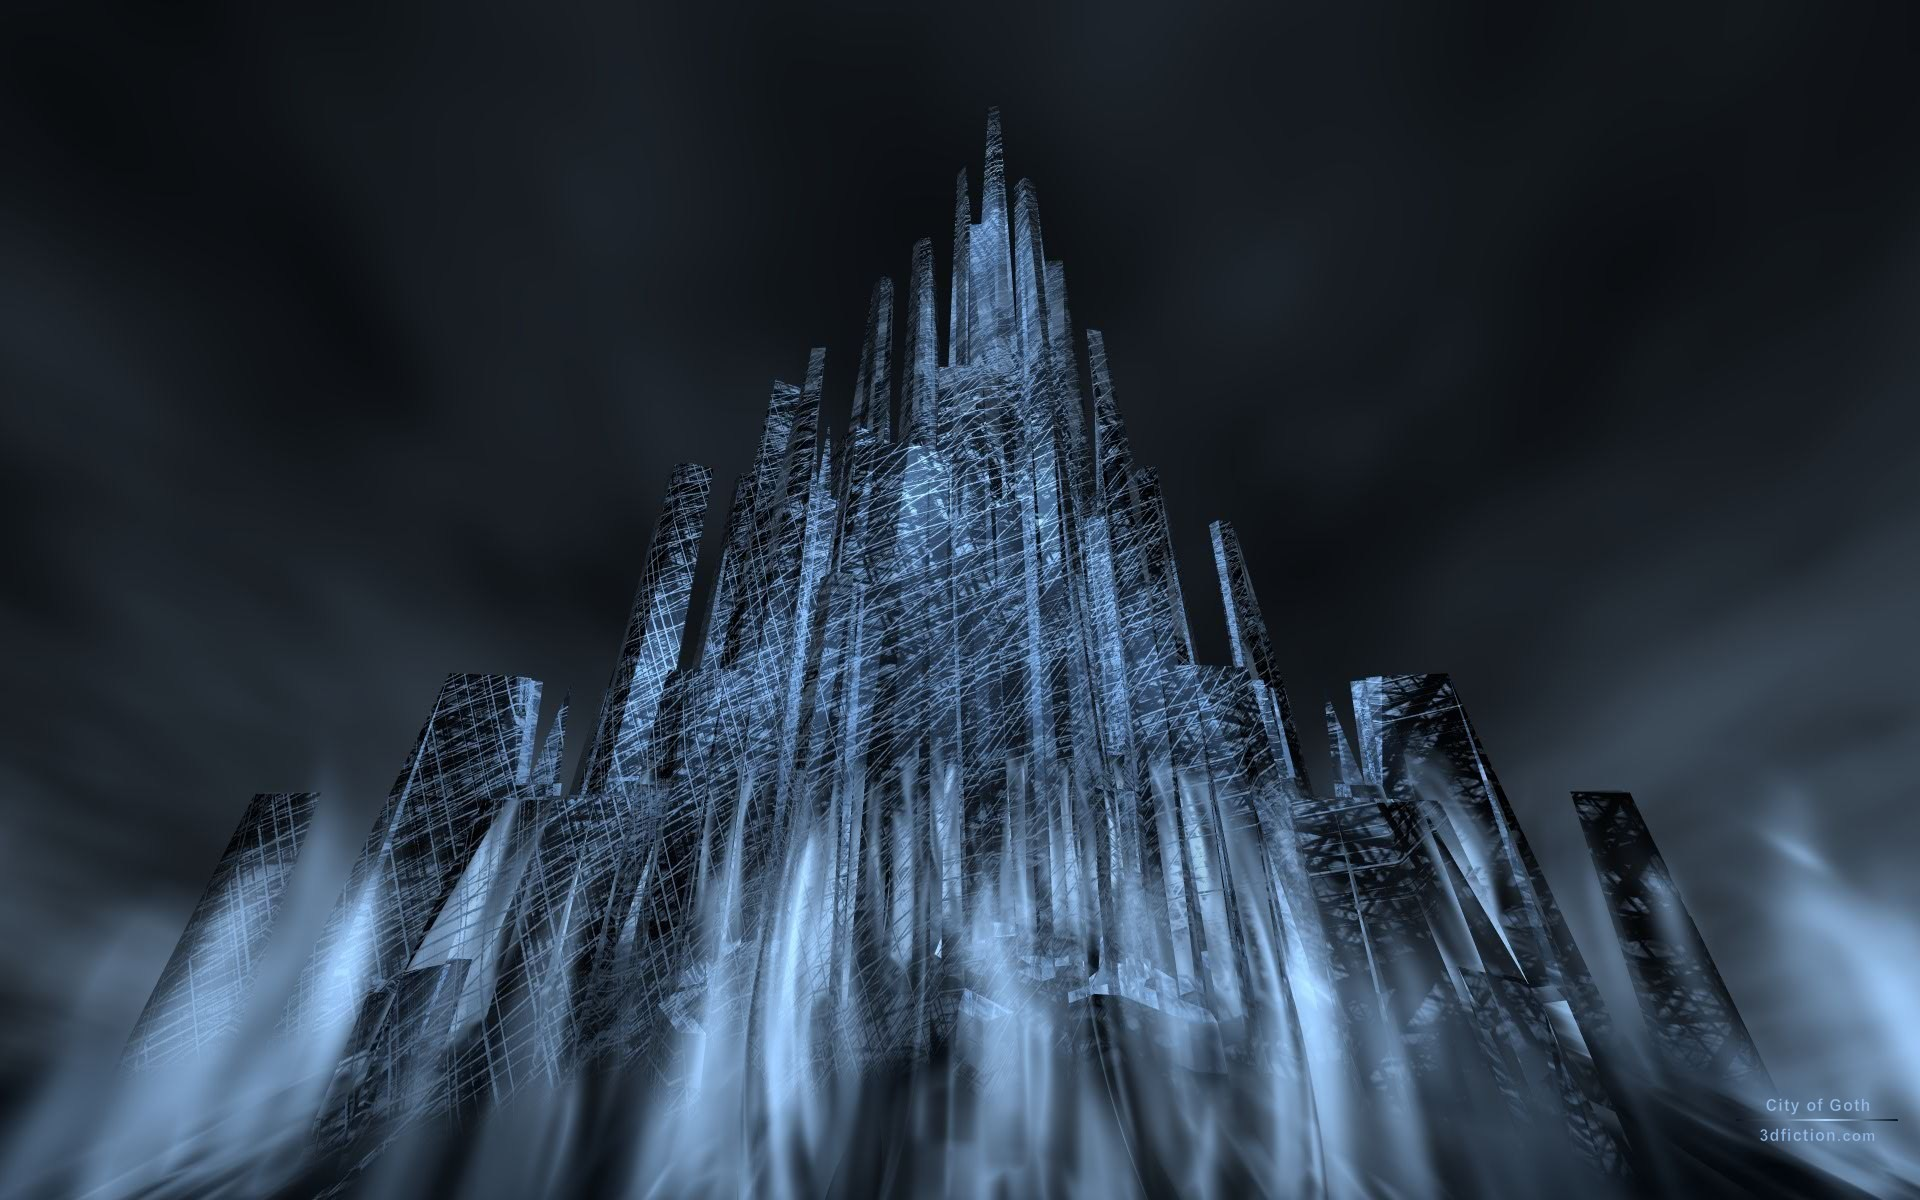 2560x1440 Gothic Castle Dark Gothic Wallpapers FREE Gothic Wallpaper 800×600 Dark Castle Backgrounds (35